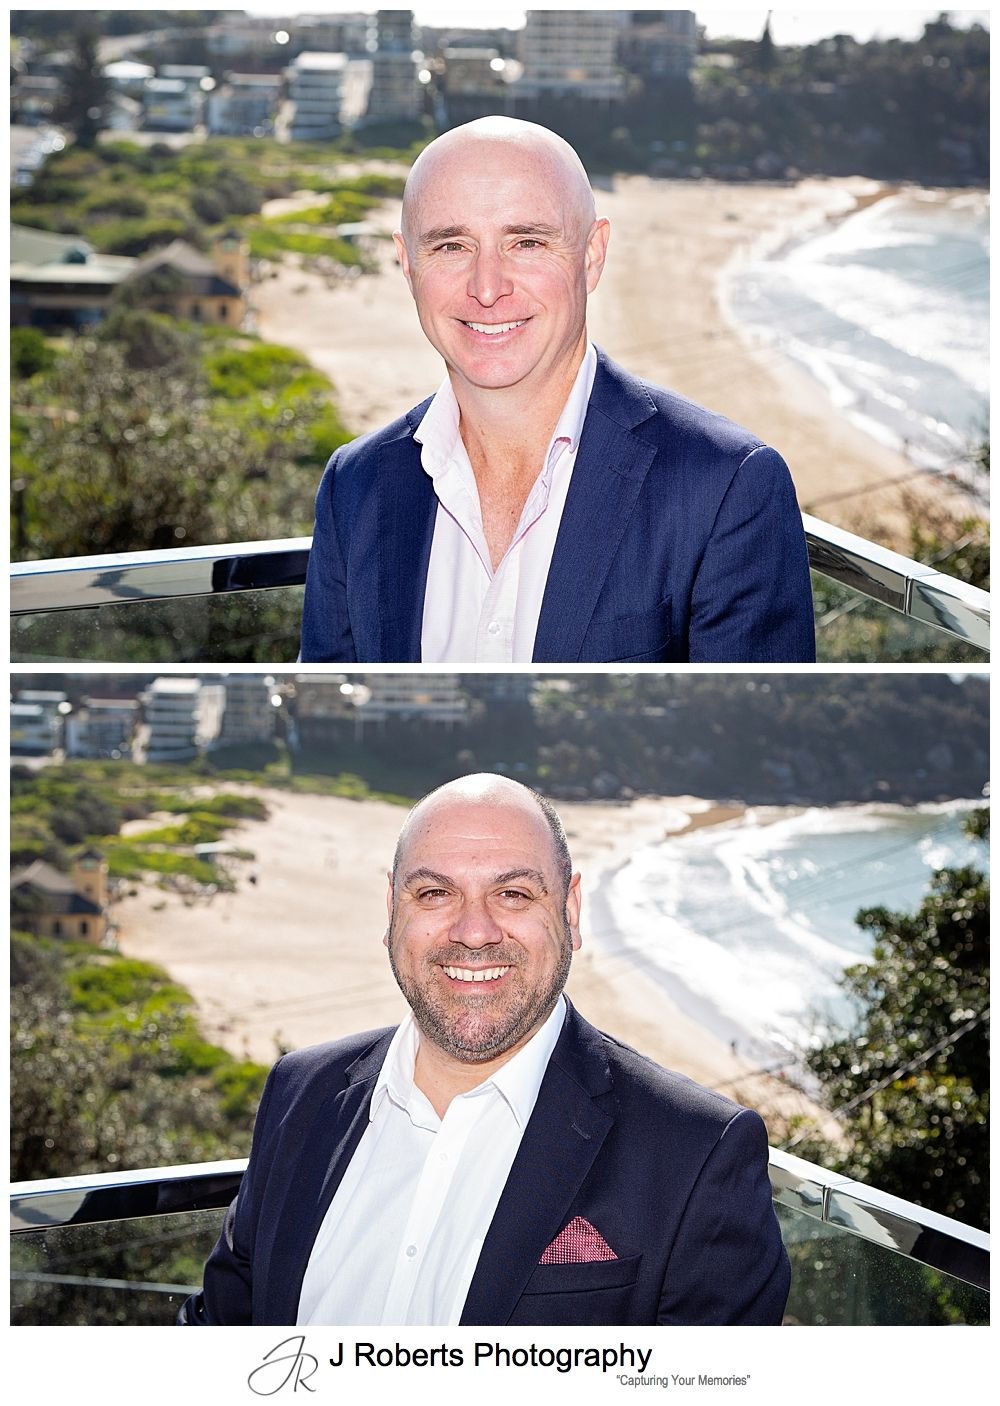 Mentor1 Corporate Headshots at Freshwater Beach Location